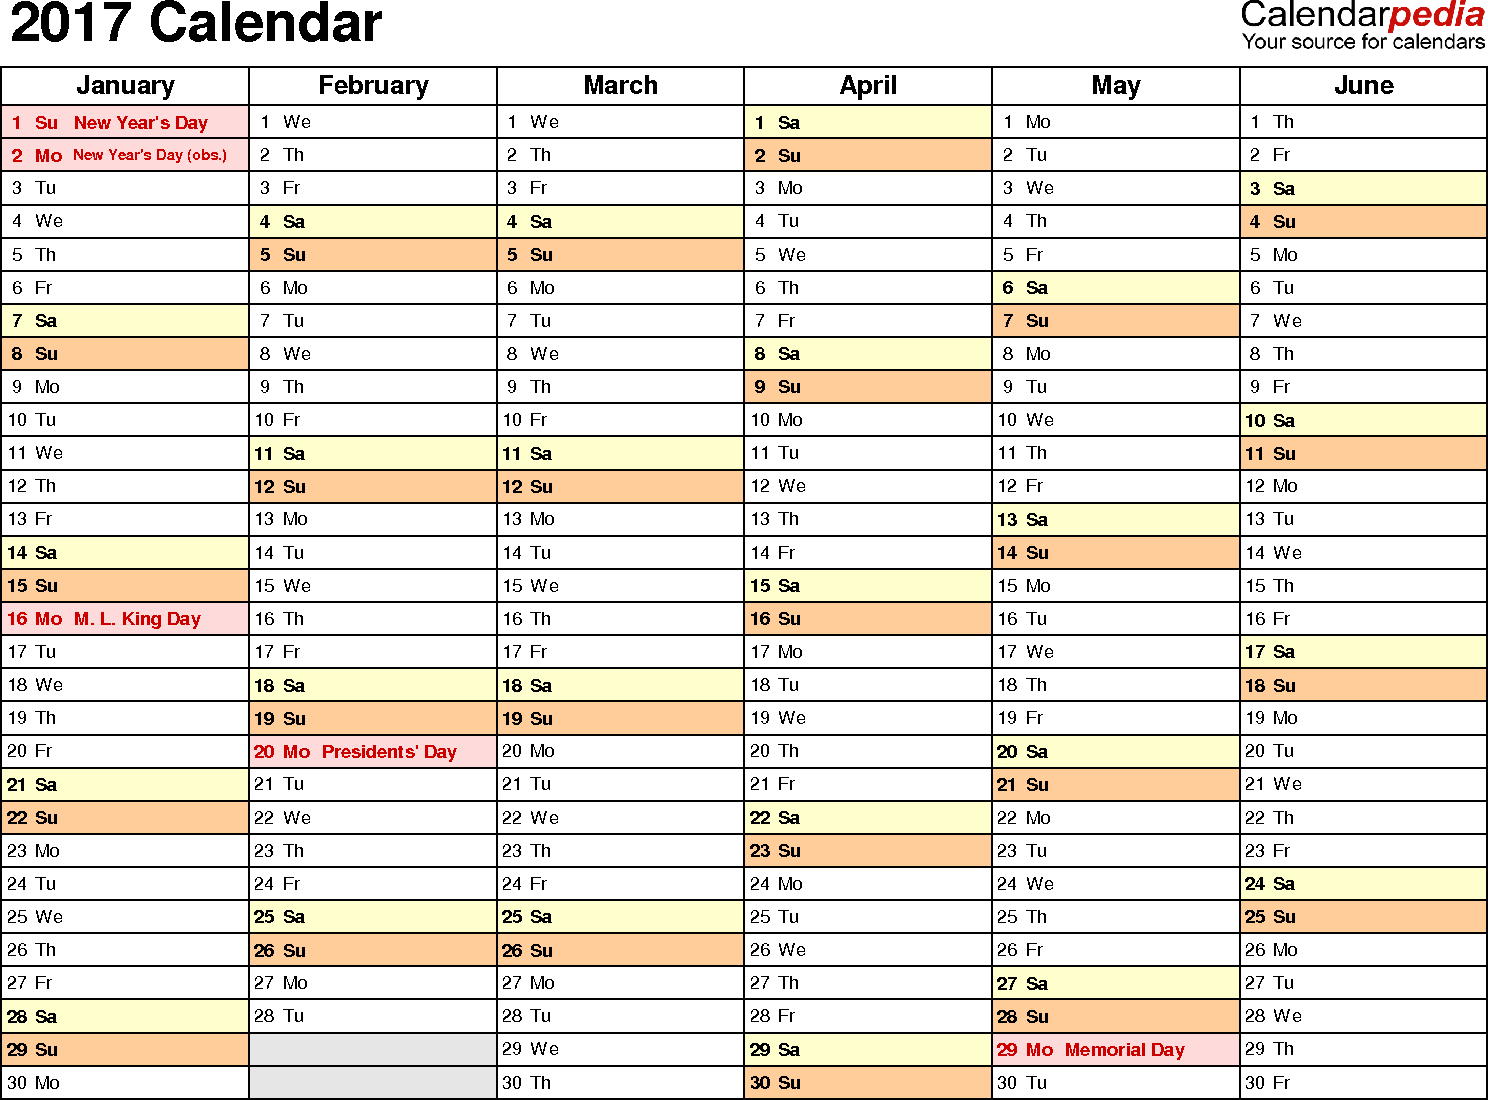 Ediblewildsus  Winning  Calendar  Download  Free Printable Excel Templates Xls With Interesting Template   Calendar For Excel Months Horizontally  Pages Landscape Orientation With Delightful How To Find Duplicate Values In Excel Also Excel Frequency Histogram In Addition Excel Mixed Cell Reference And Excel Date Format Formula As Well As Excel Transpose Cells Additionally What Is Range In Excel From Calendarpediacom With Ediblewildsus  Interesting  Calendar  Download  Free Printable Excel Templates Xls With Delightful Template   Calendar For Excel Months Horizontally  Pages Landscape Orientation And Winning How To Find Duplicate Values In Excel Also Excel Frequency Histogram In Addition Excel Mixed Cell Reference From Calendarpediacom